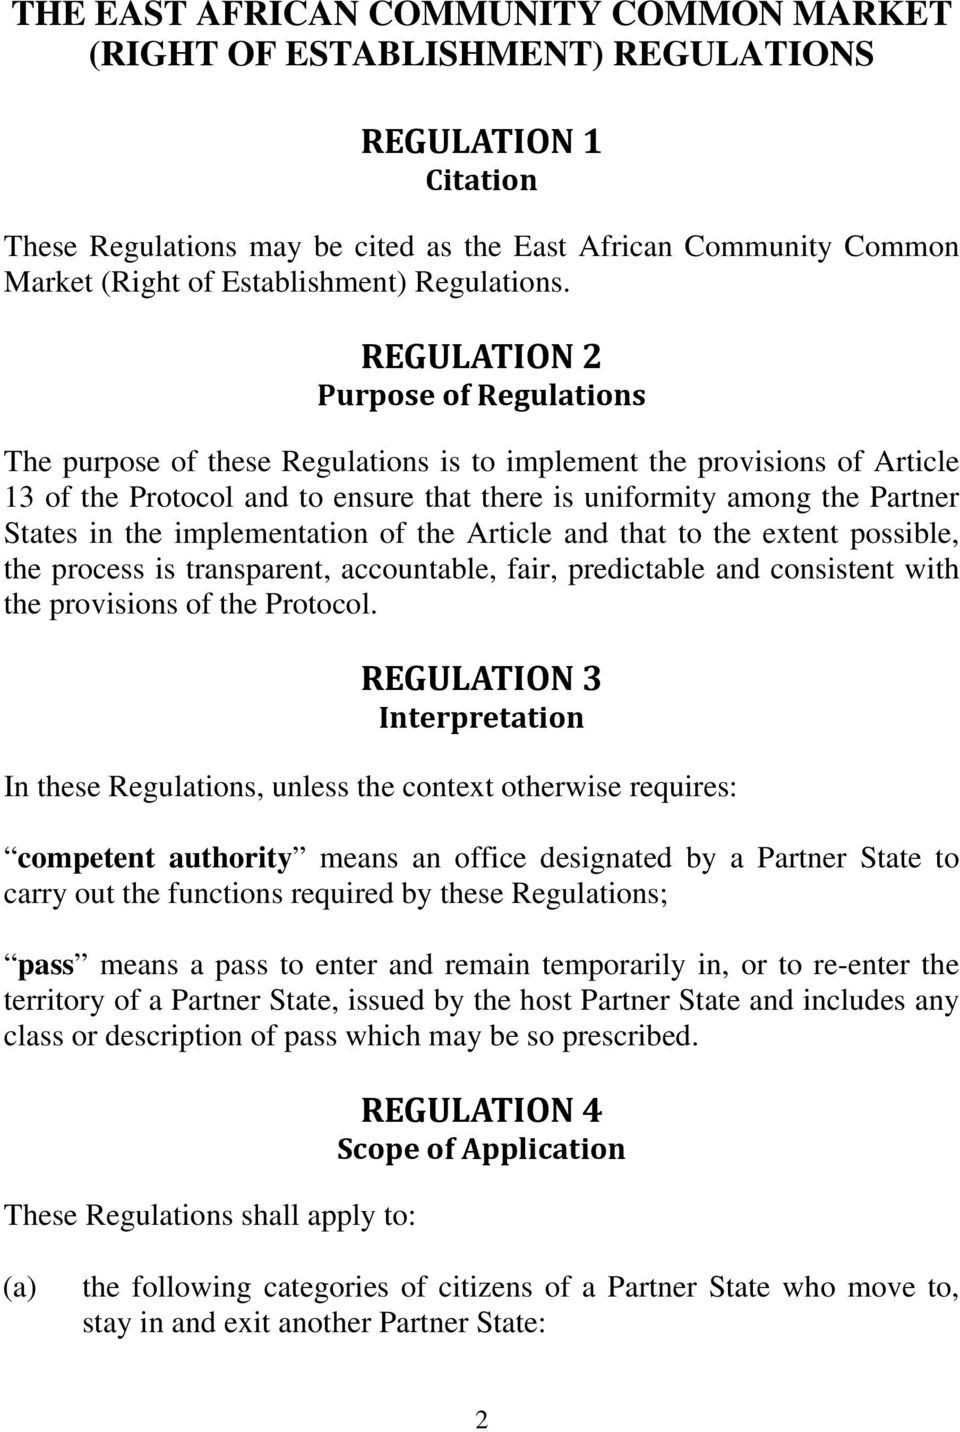 REGULATION 2 Purpose of Regulations The purpose of these Regulations is to implement the provisions of Article 13 of the Protocol and to ensure that there is uniformity among the Partner States in